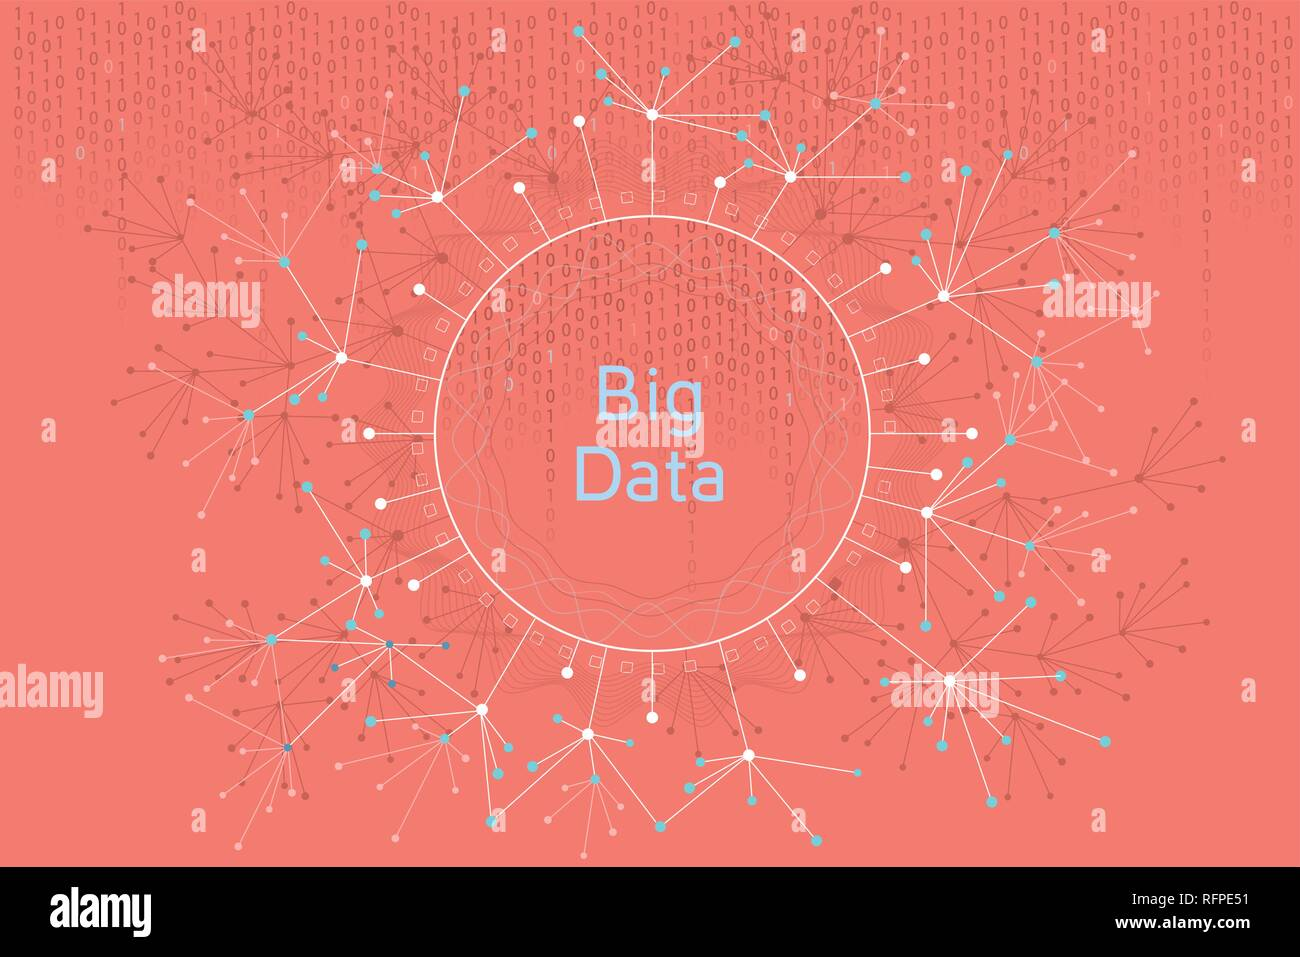 Big data vector concept illustration. Futuristic graphic illustration about visual data and social media analitics. - Stock Vector